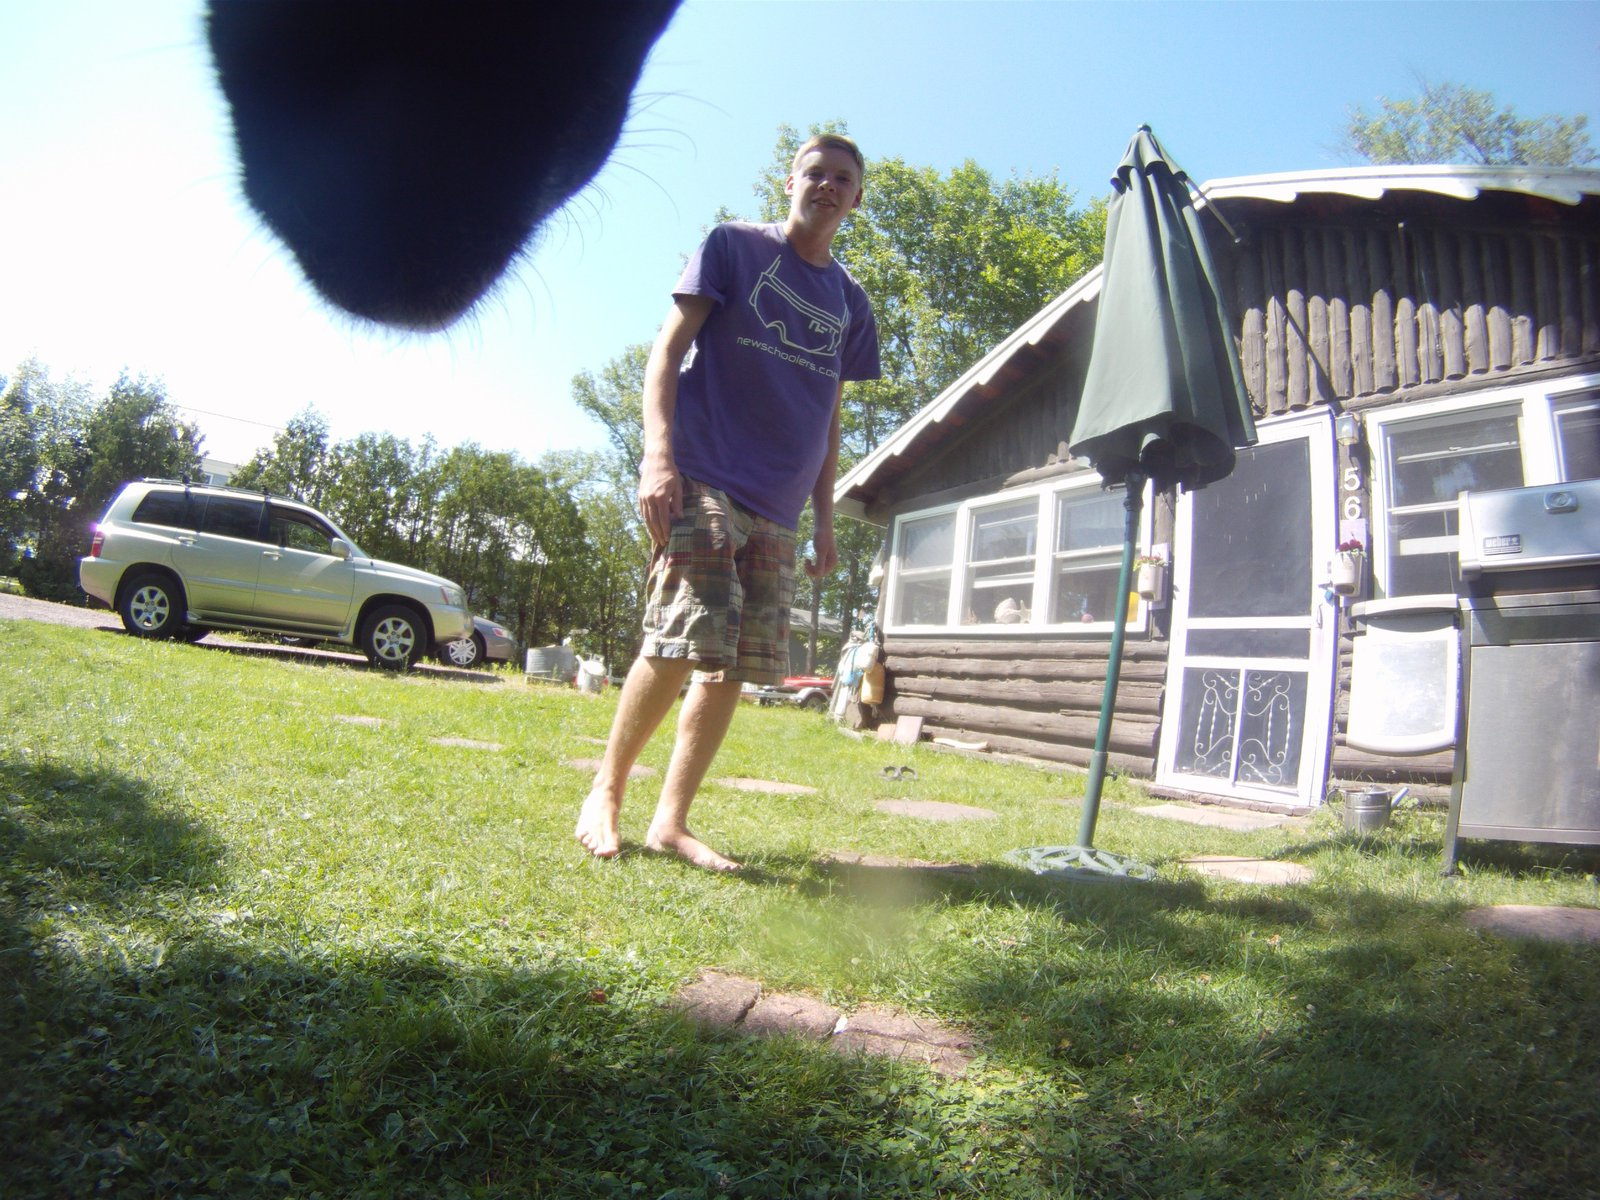 GoPro on the Pooch